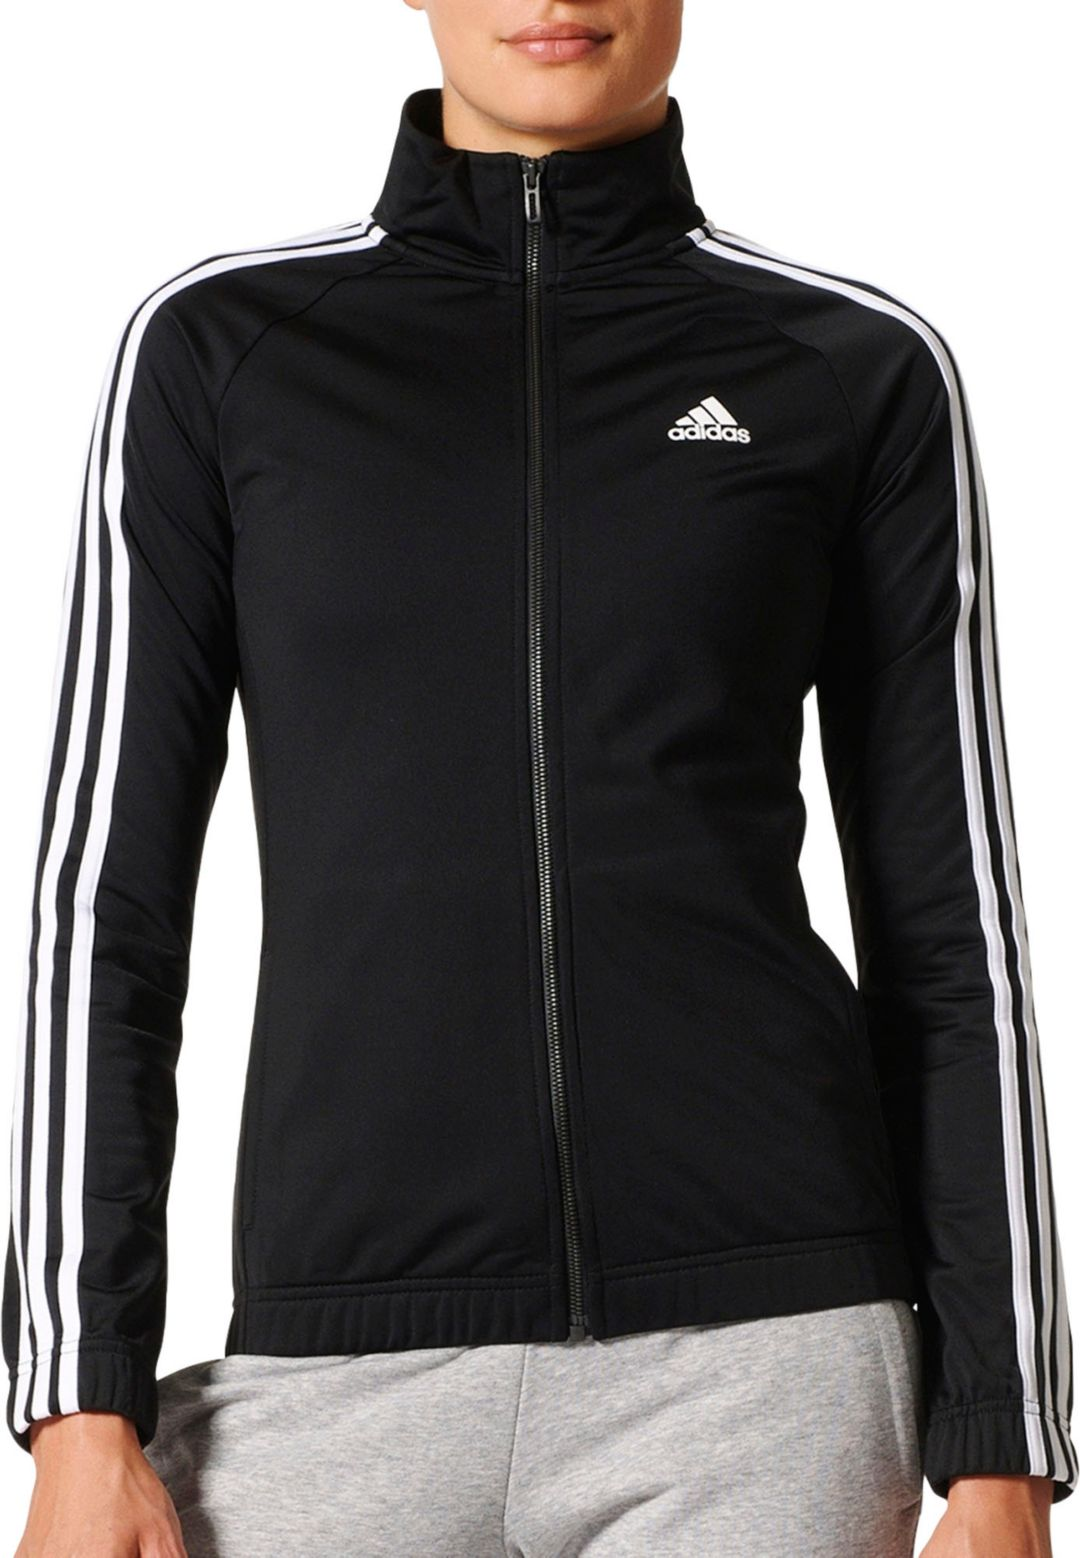 c162a8e79 adidas Women's Designed 2 Move Track Jacket | DICK'S Sporting Goods